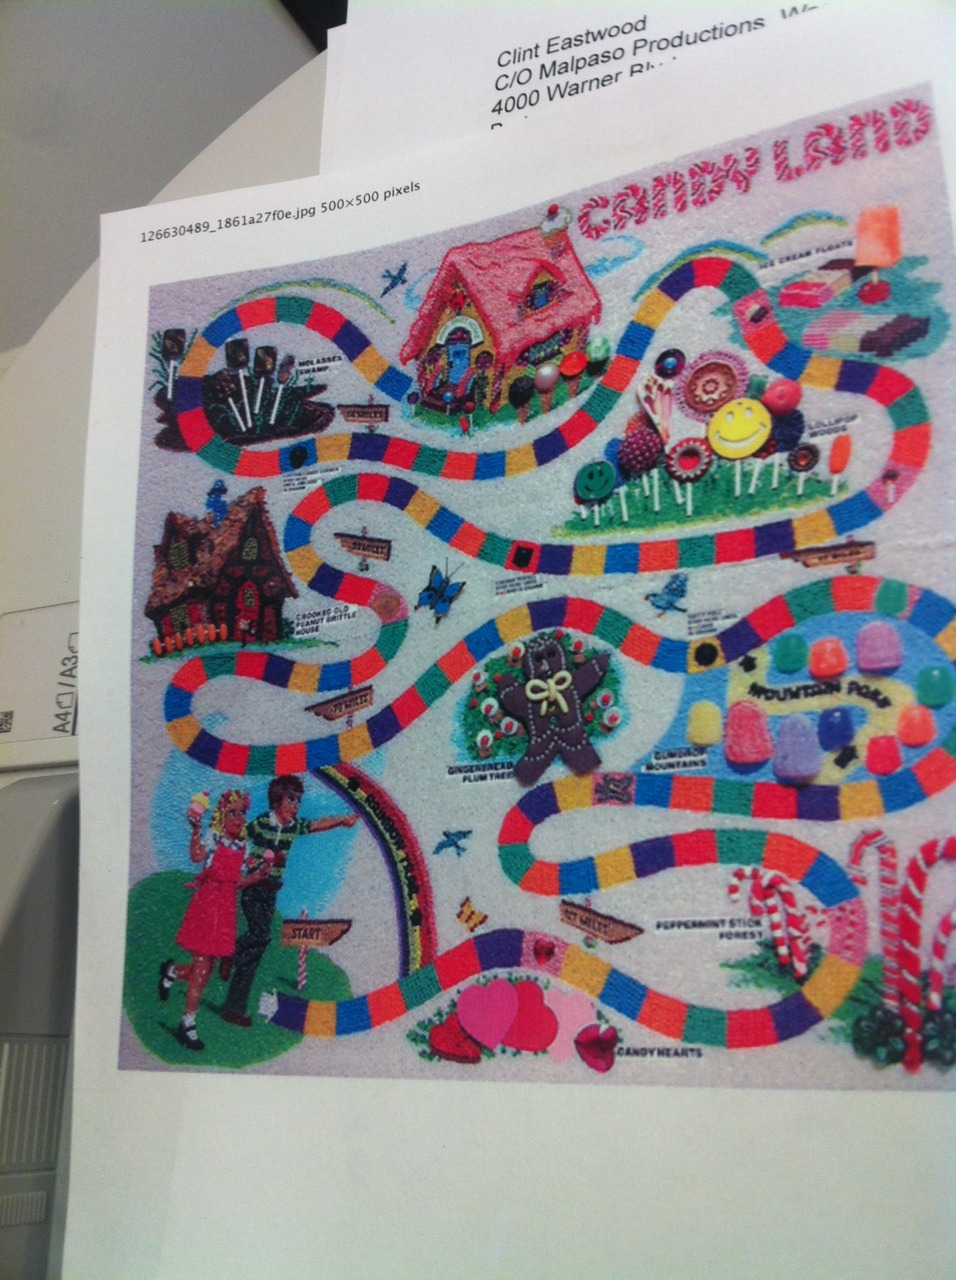 Why he printed a Candy Land map? Your guess…